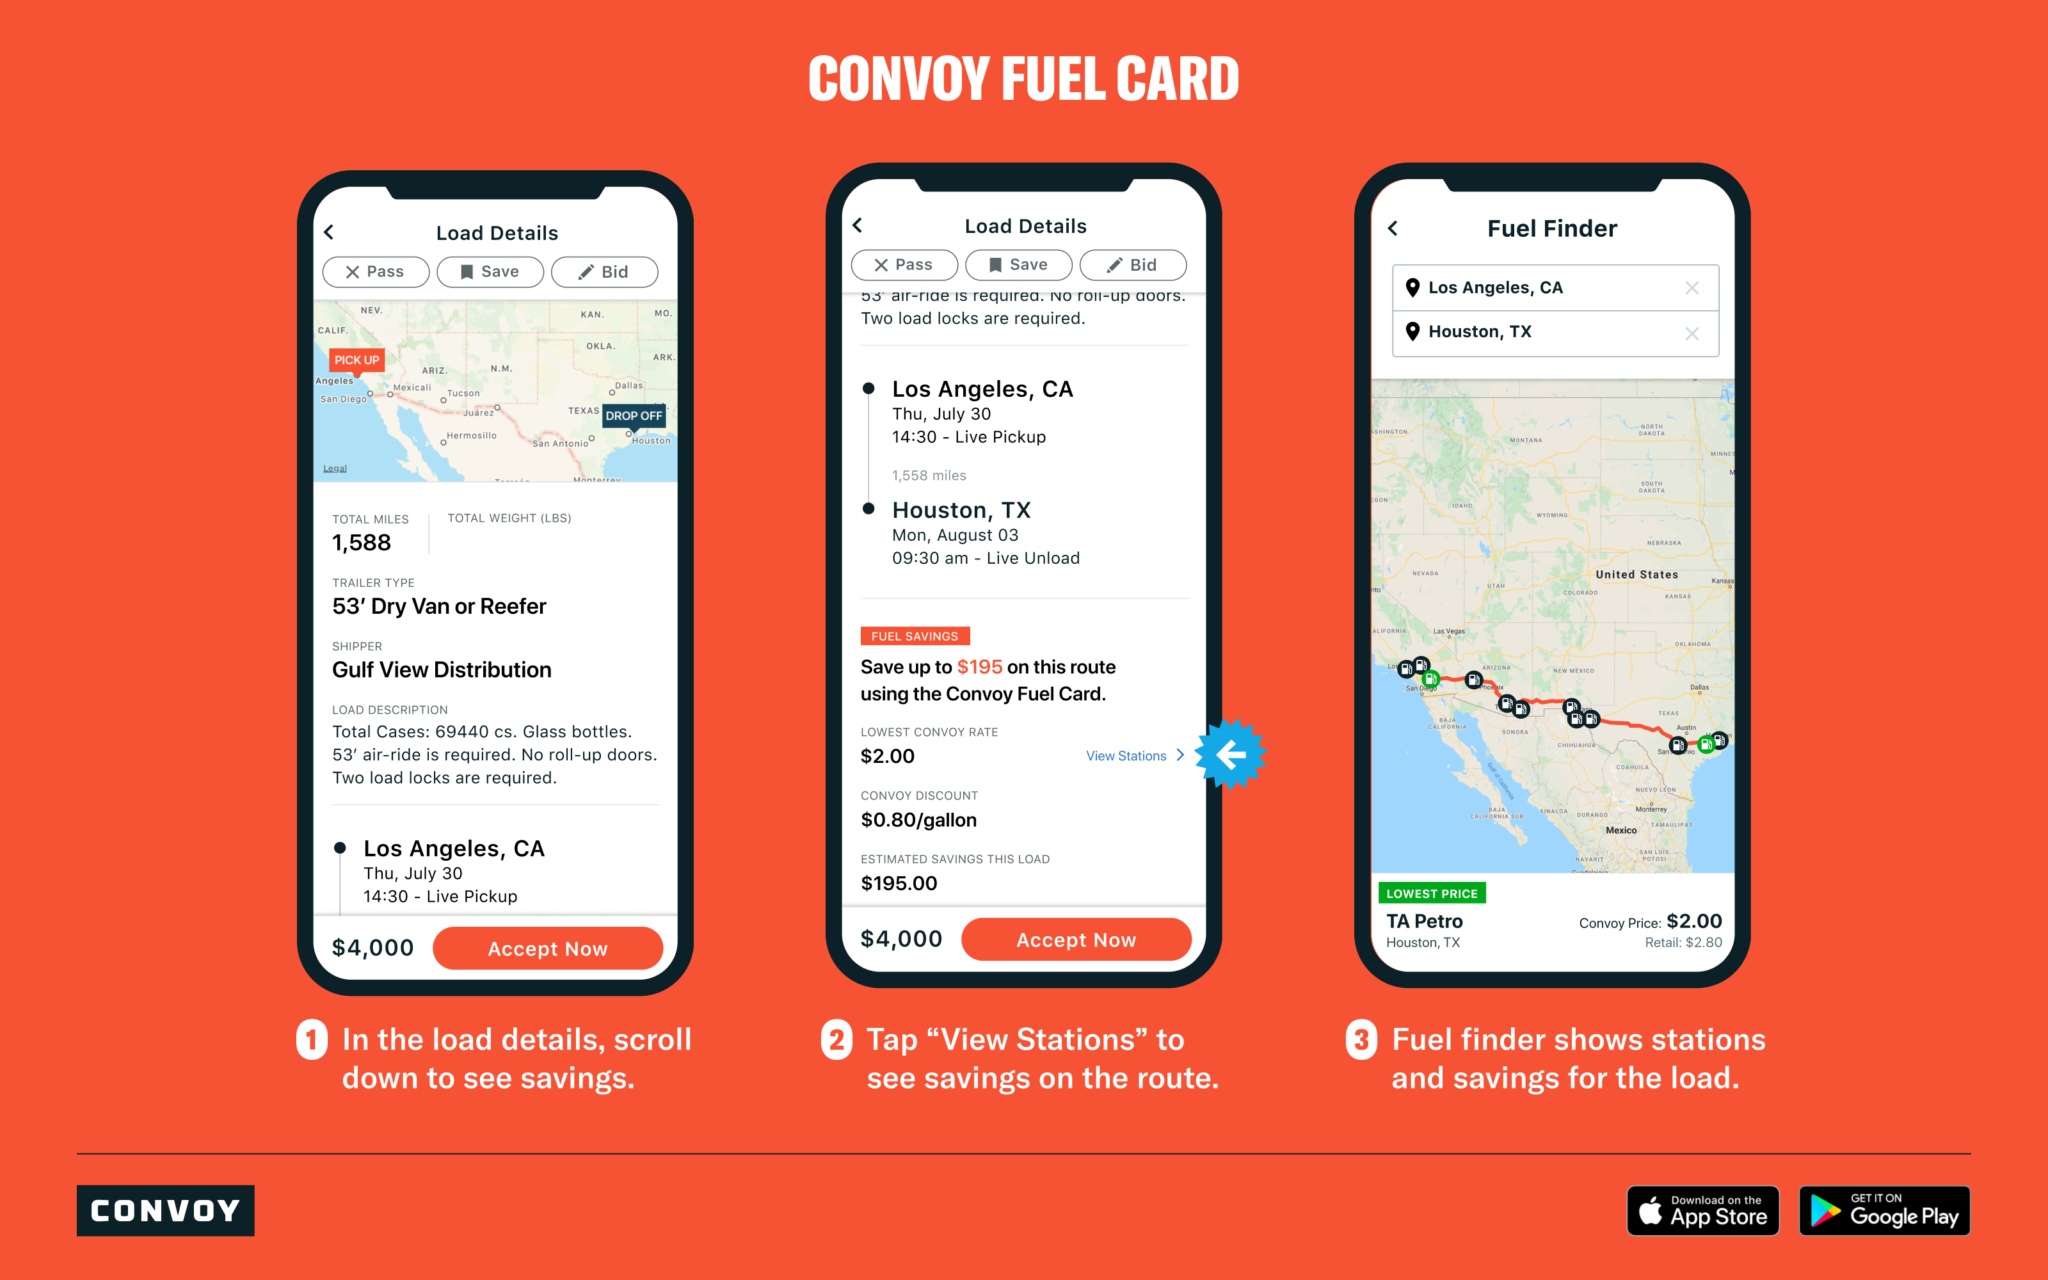 Convoy-fuel-card-process-screens-1-2048x1280.png